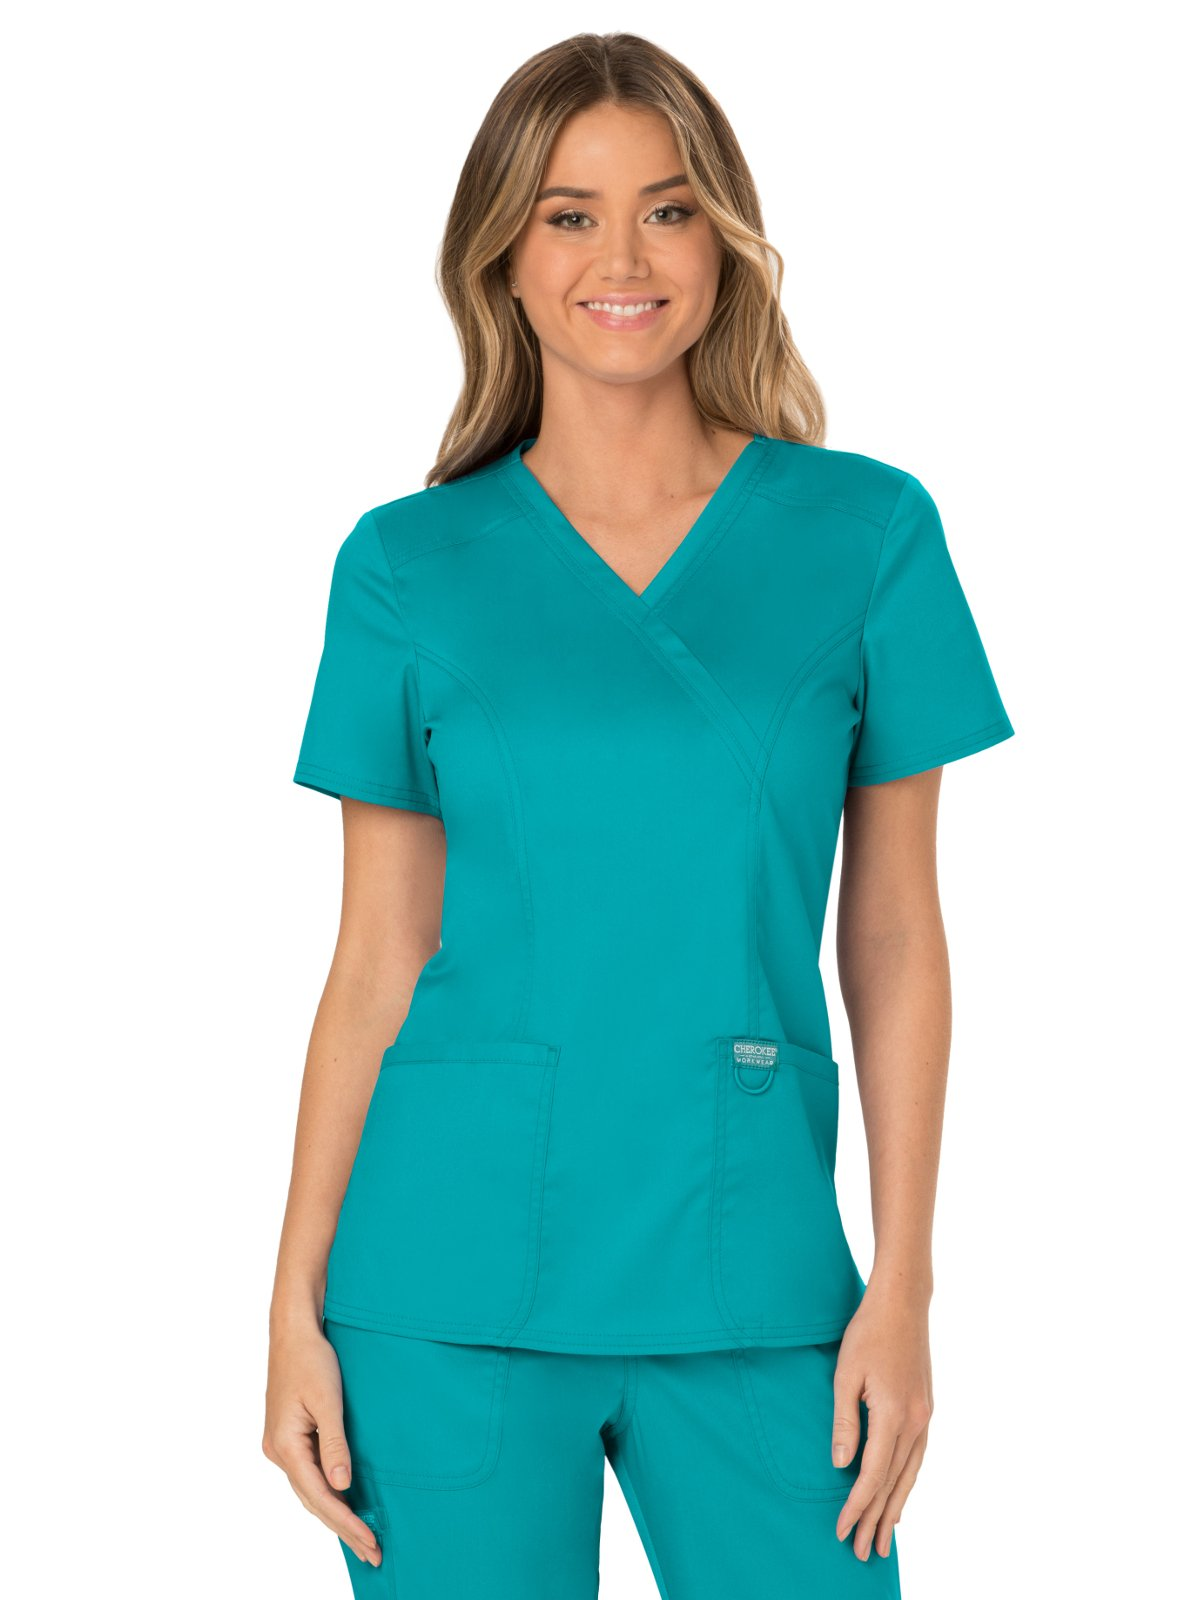 WW Revolution by Cherokee WW610 Women's Mock Wrap Scrub Top, Teal Blue, M by WW Revolution by Cherokee (Image #1)